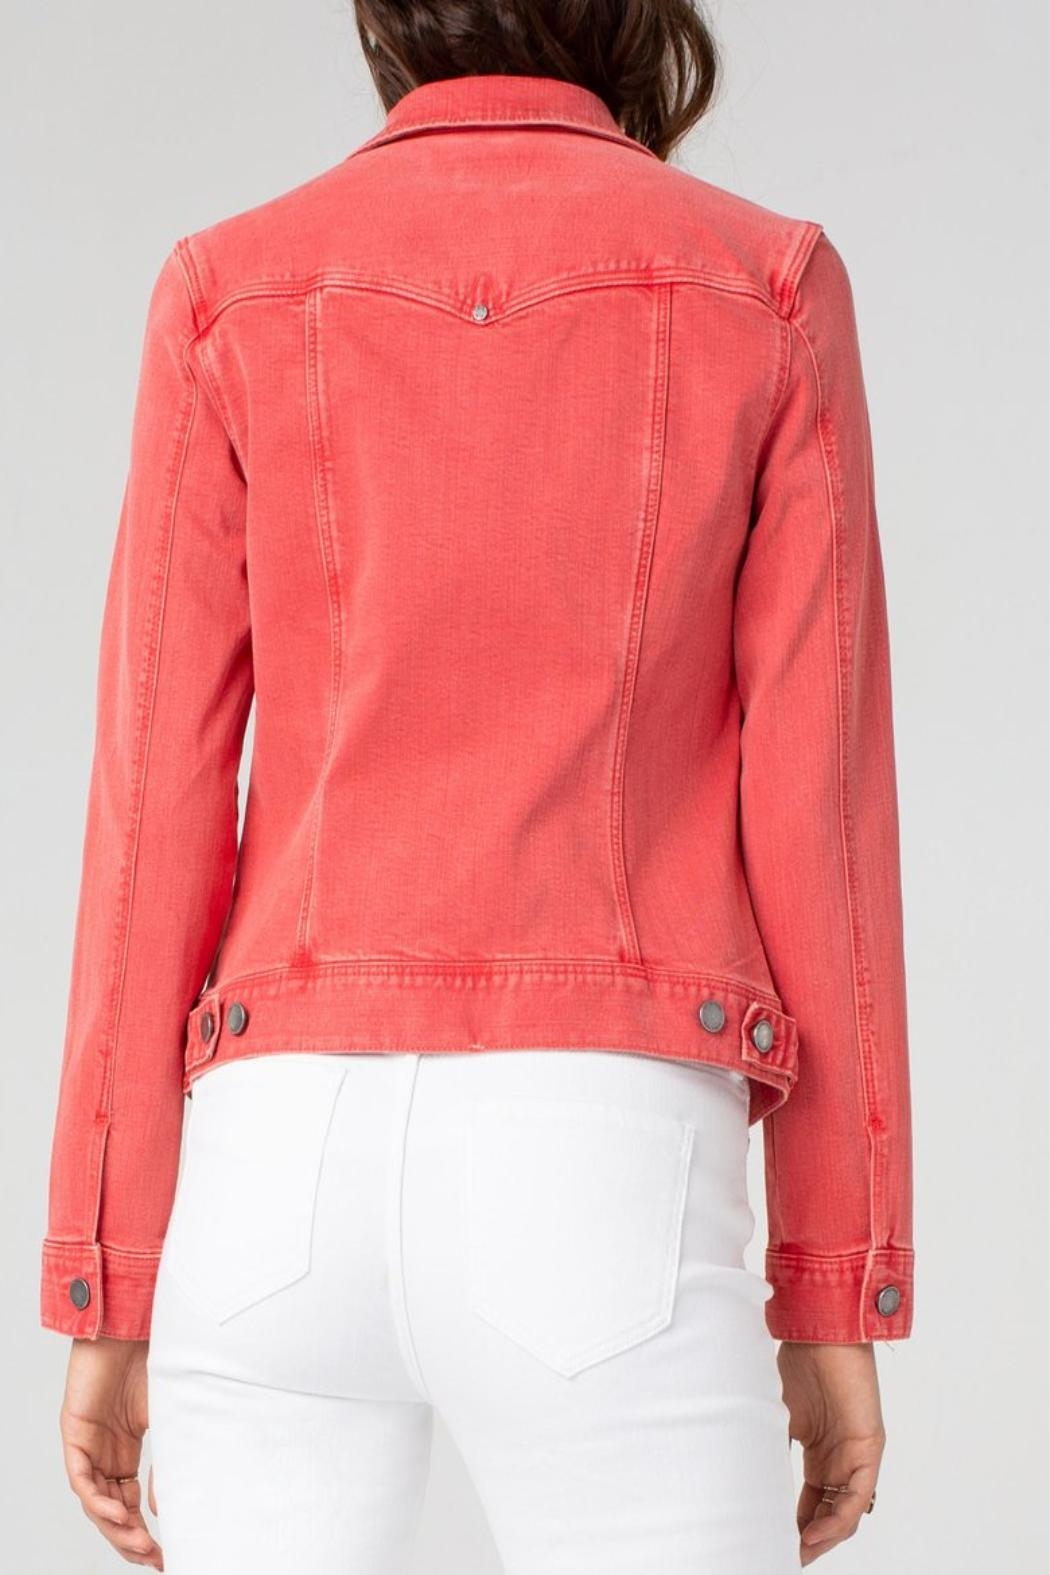 Liverpool Jean Company Coral Jean Jacket - Front Full Image